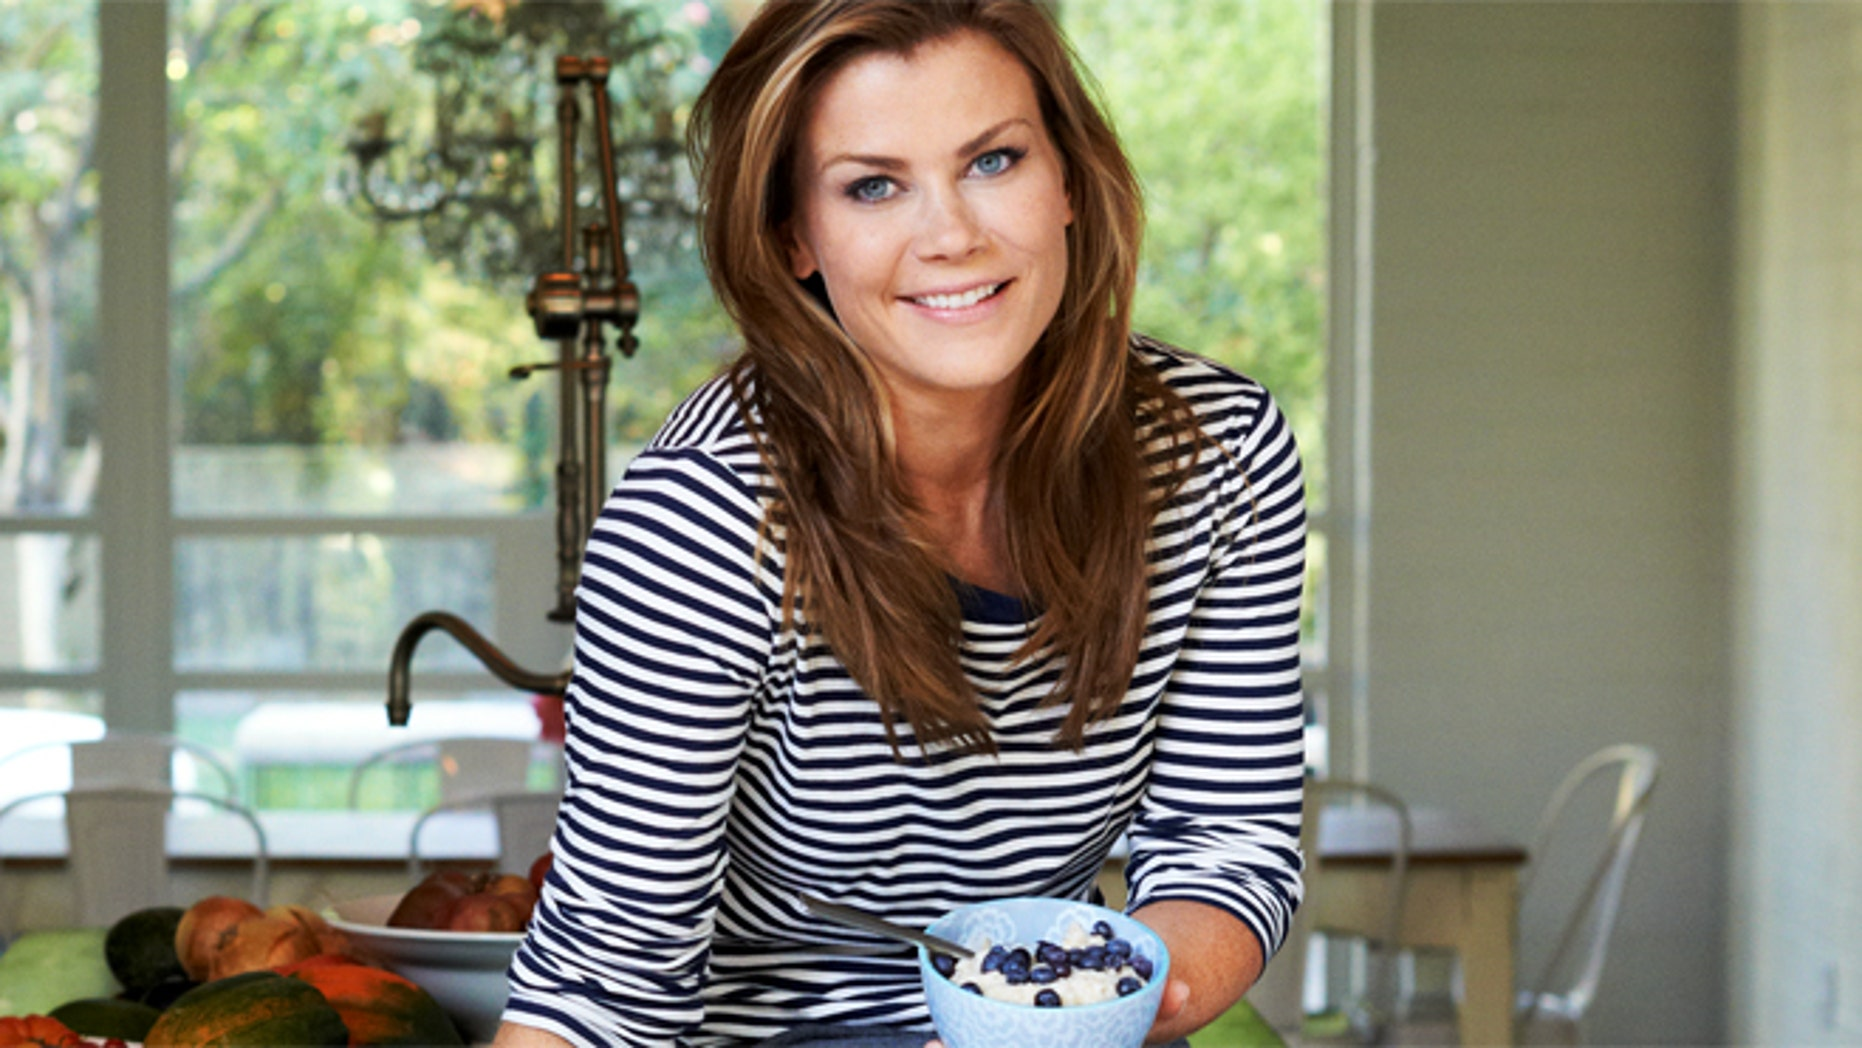 Adding vitamin C and fiber to your diet, blueberries have only 80 calories per cup making them a smart choice for weight management and heart health. They are also a top choice for Alison Sweeney, host of The Biggest Loser on NBC.